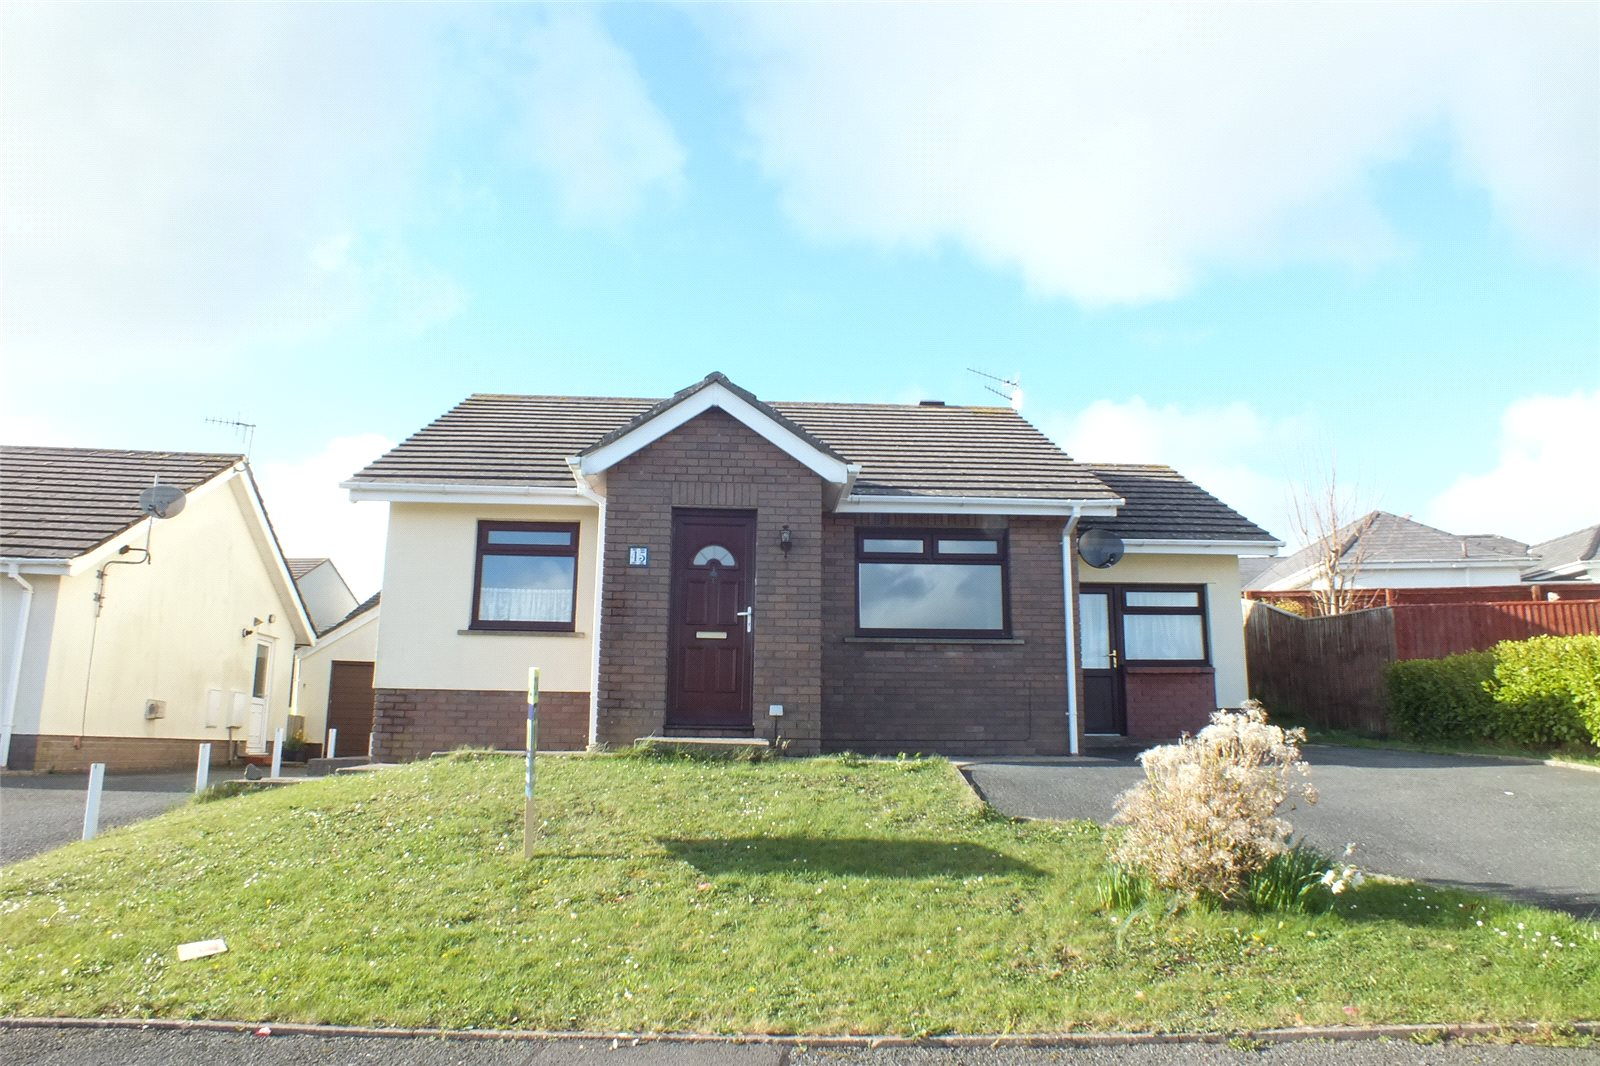 2 Bedrooms Detached Bungalow for sale in Glenview Avenue, Pembroke Dock, Pembrokeshire